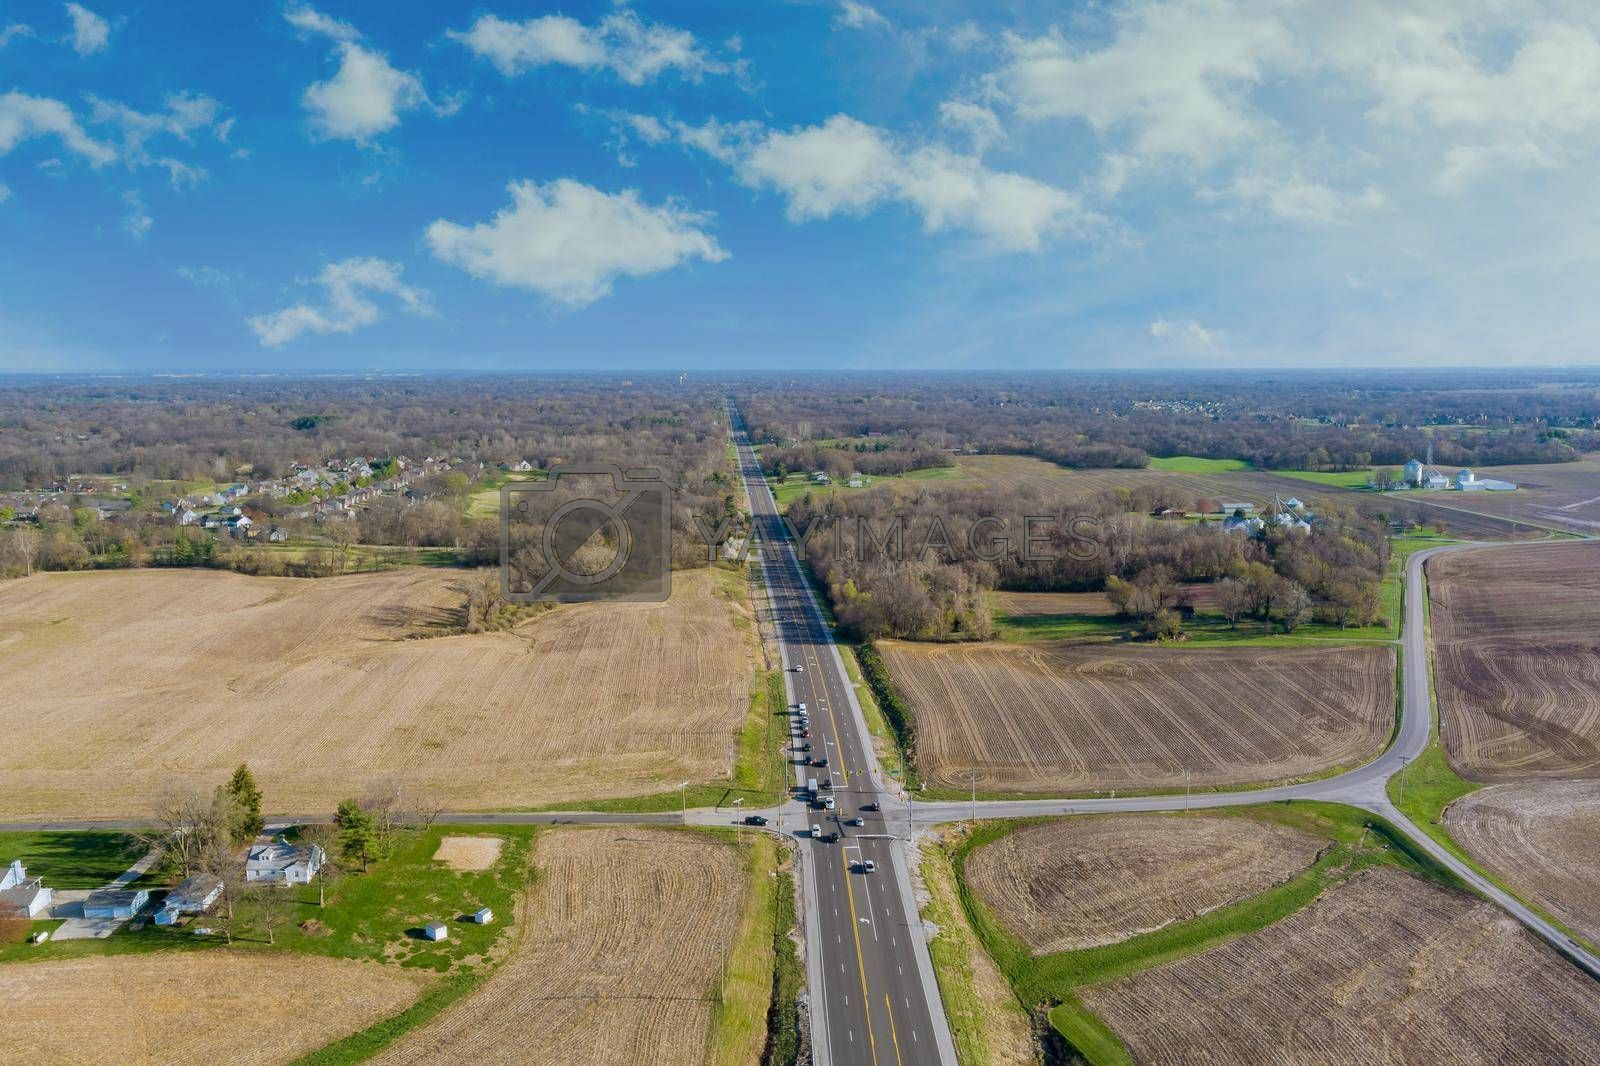 Aerial view of american countryside farmland country asphalt road through landscape the Caseyville Illinois on USA